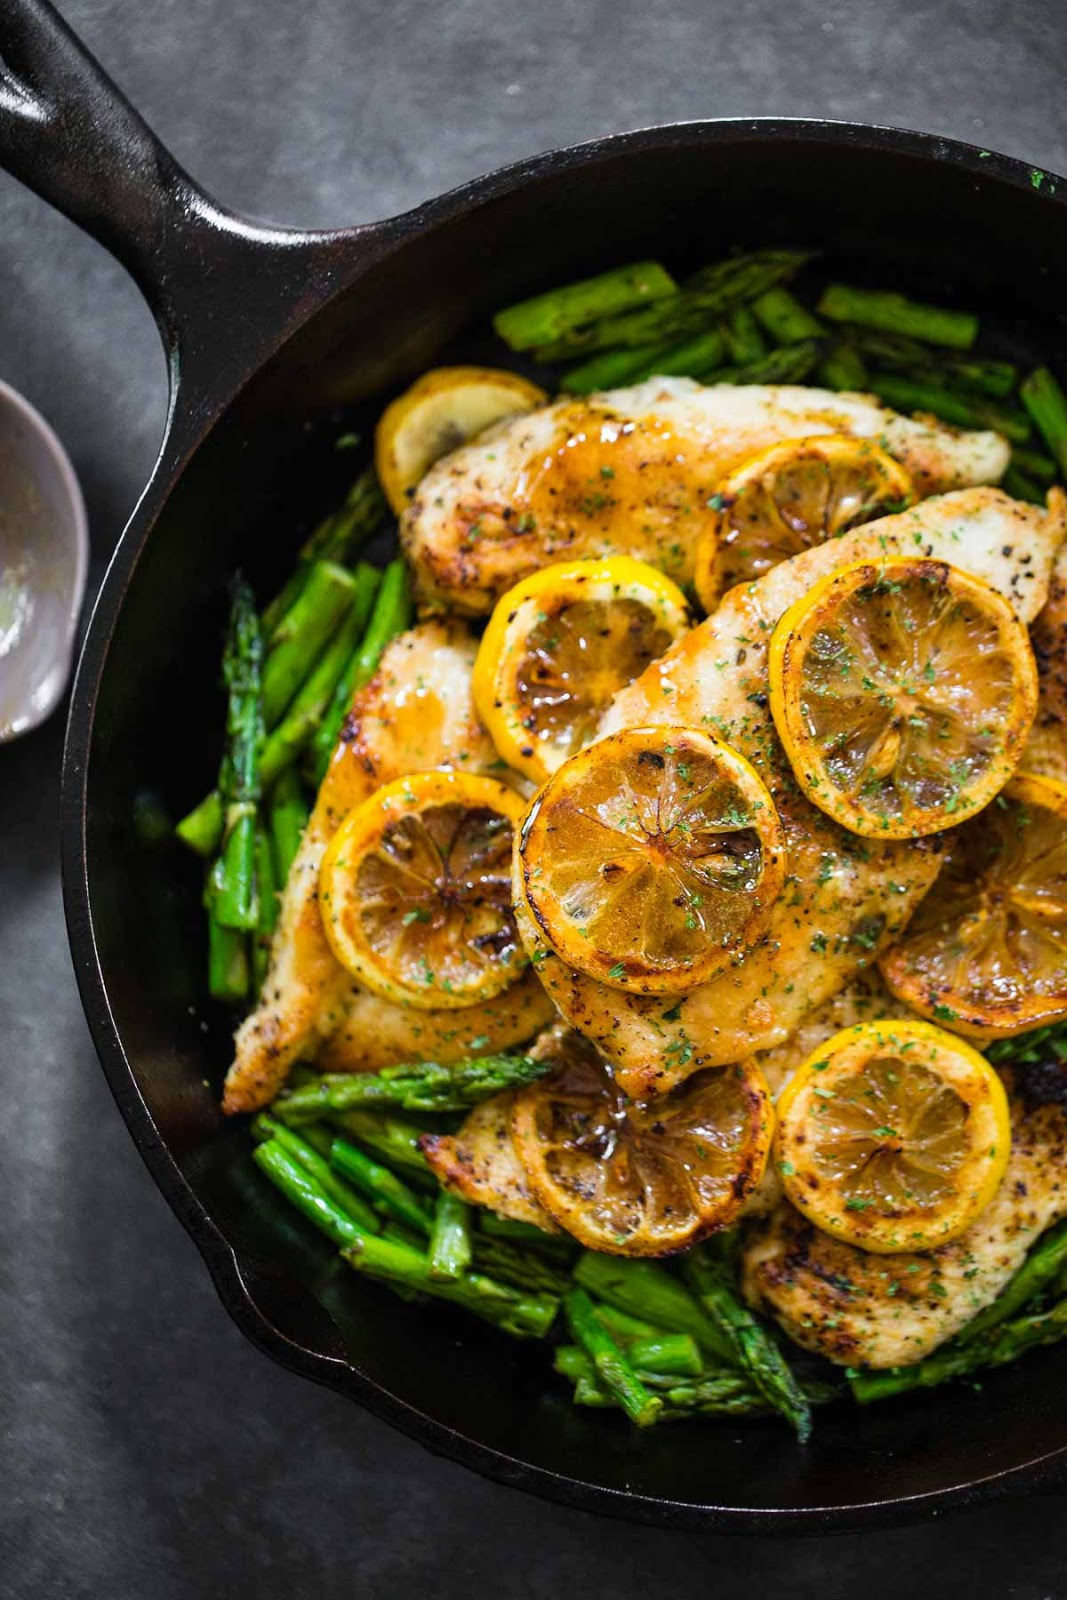 #Recipe : Lemon Chicken with Asparagus